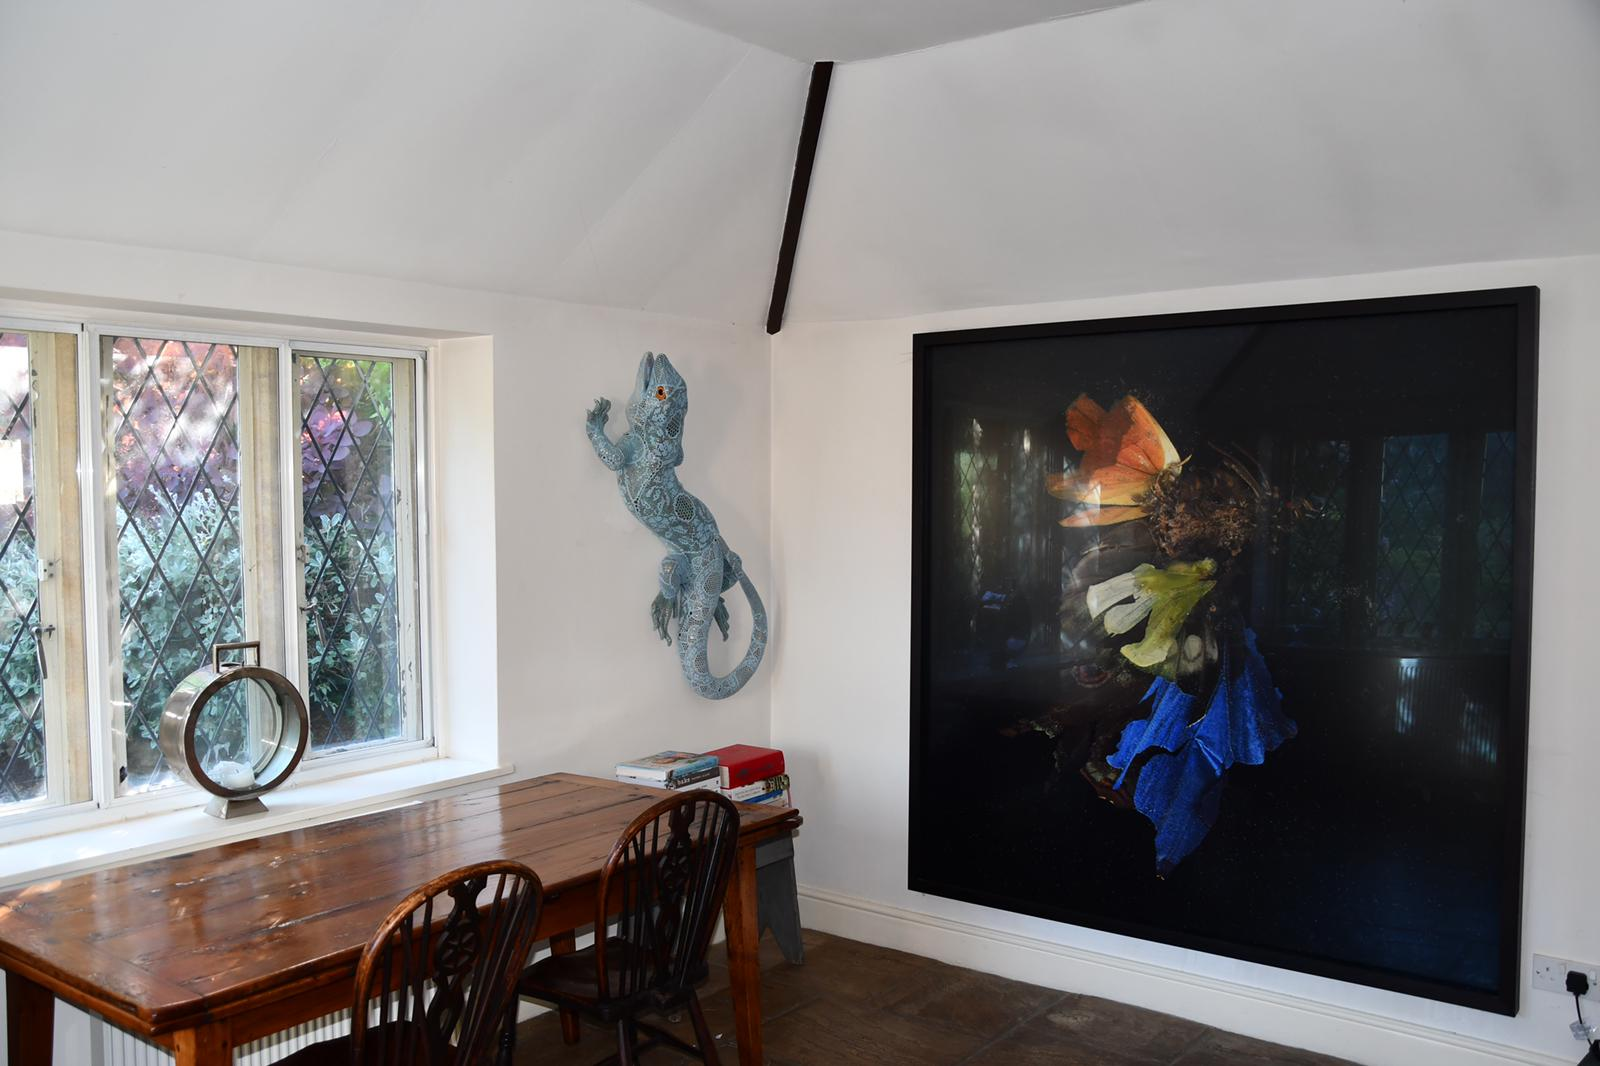 Art by Joanna Vasconcelos and Mat Collishaw in the home of Matt Carey-Williams